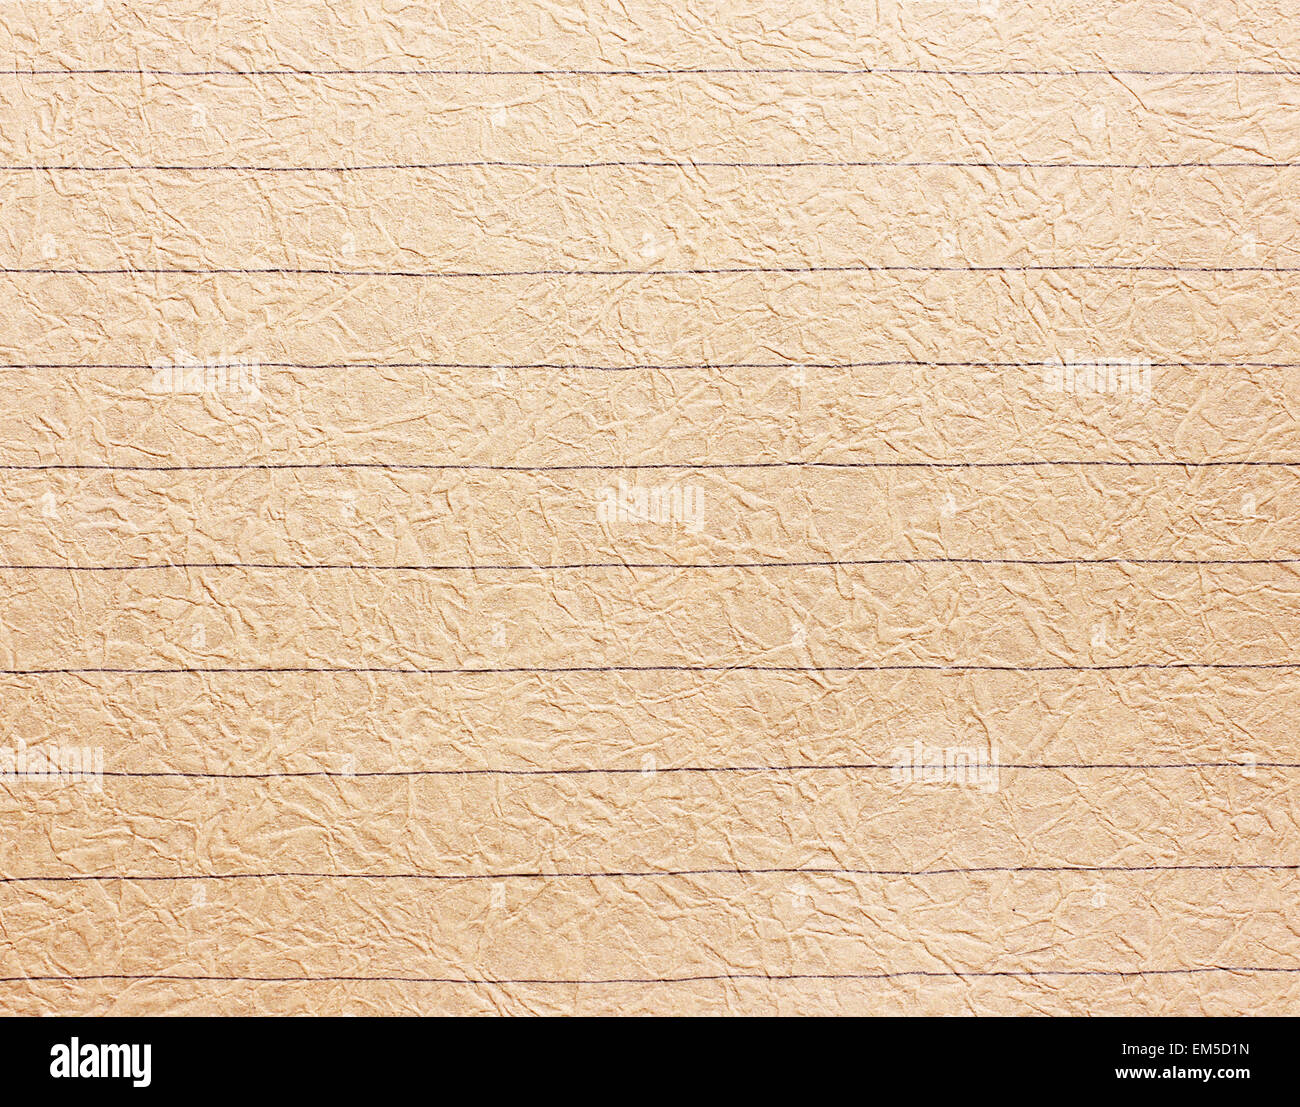 Old rough lined notebook paper background or textured stock photo old rough lined notebook paper background or textured altavistaventures Gallery